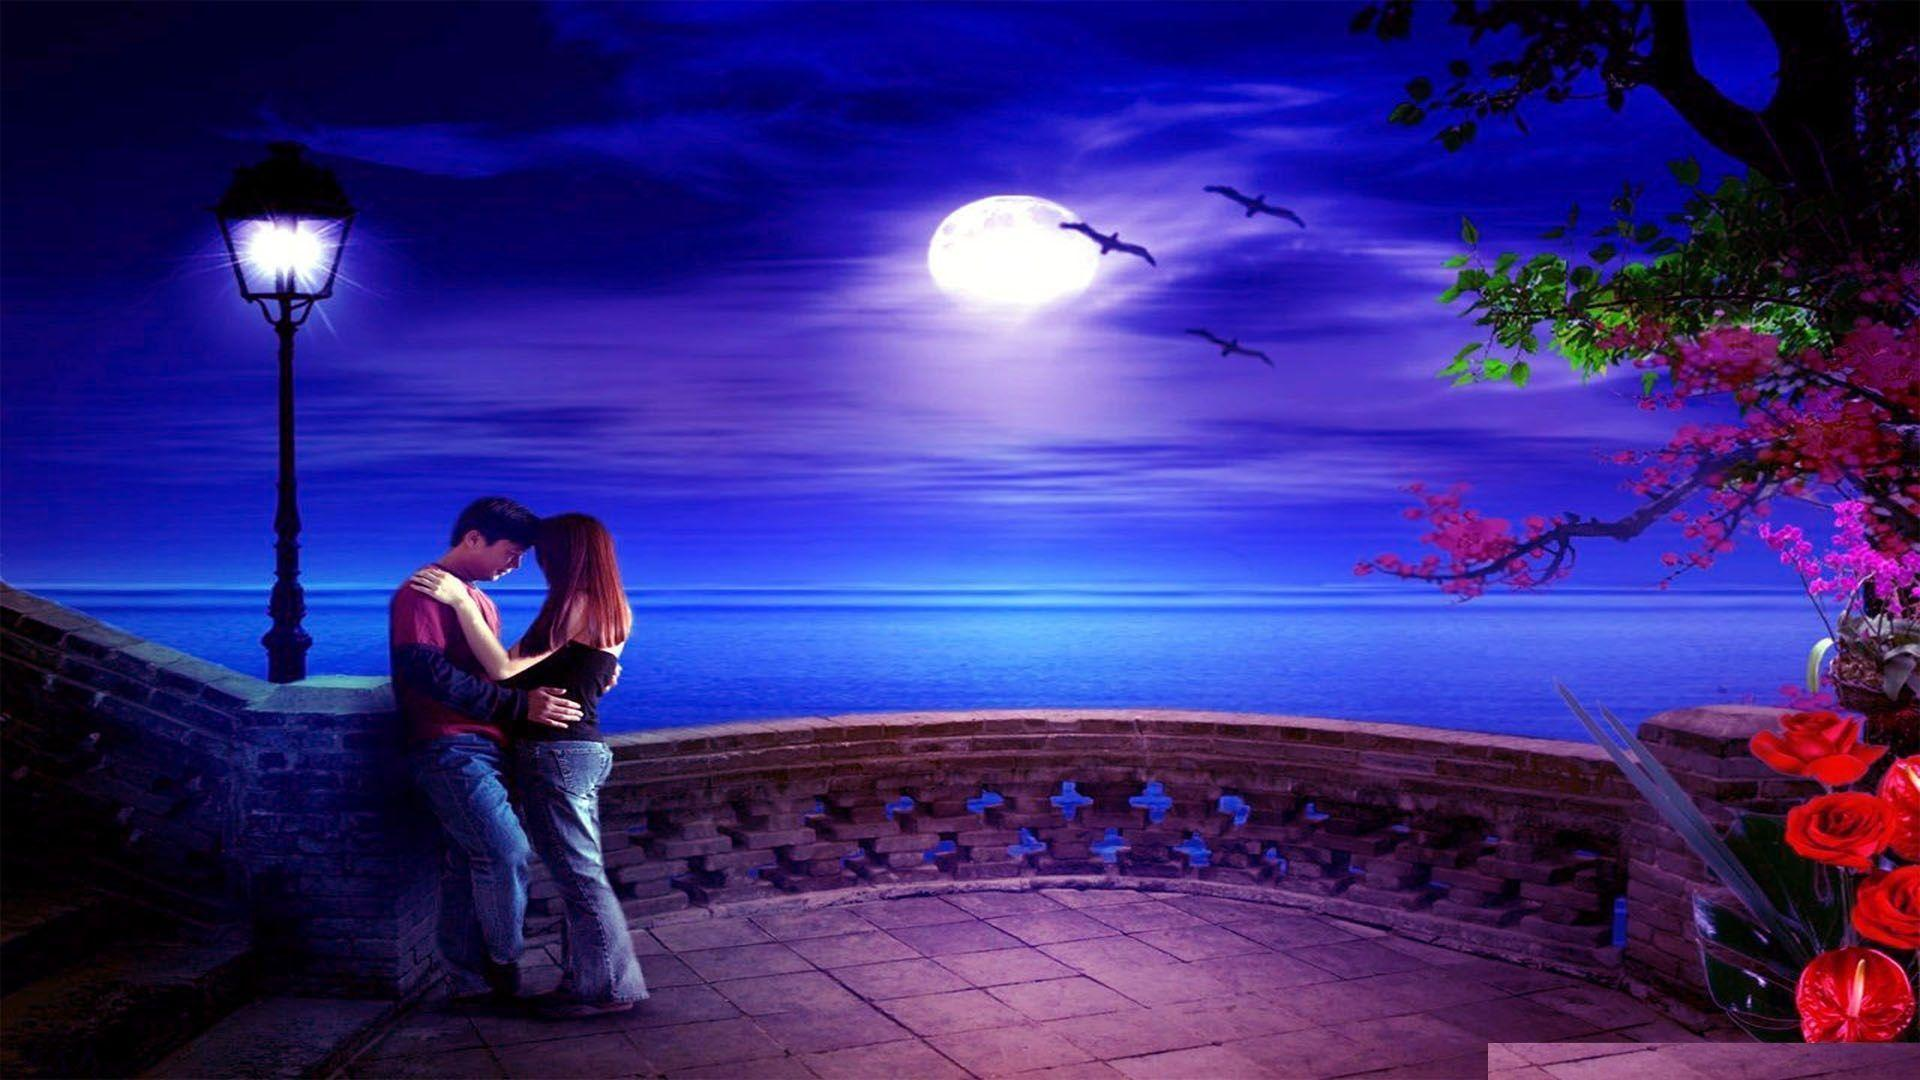 Wallpapers romantic wallpaper cave - High definition love wallpapers 1080p download ...